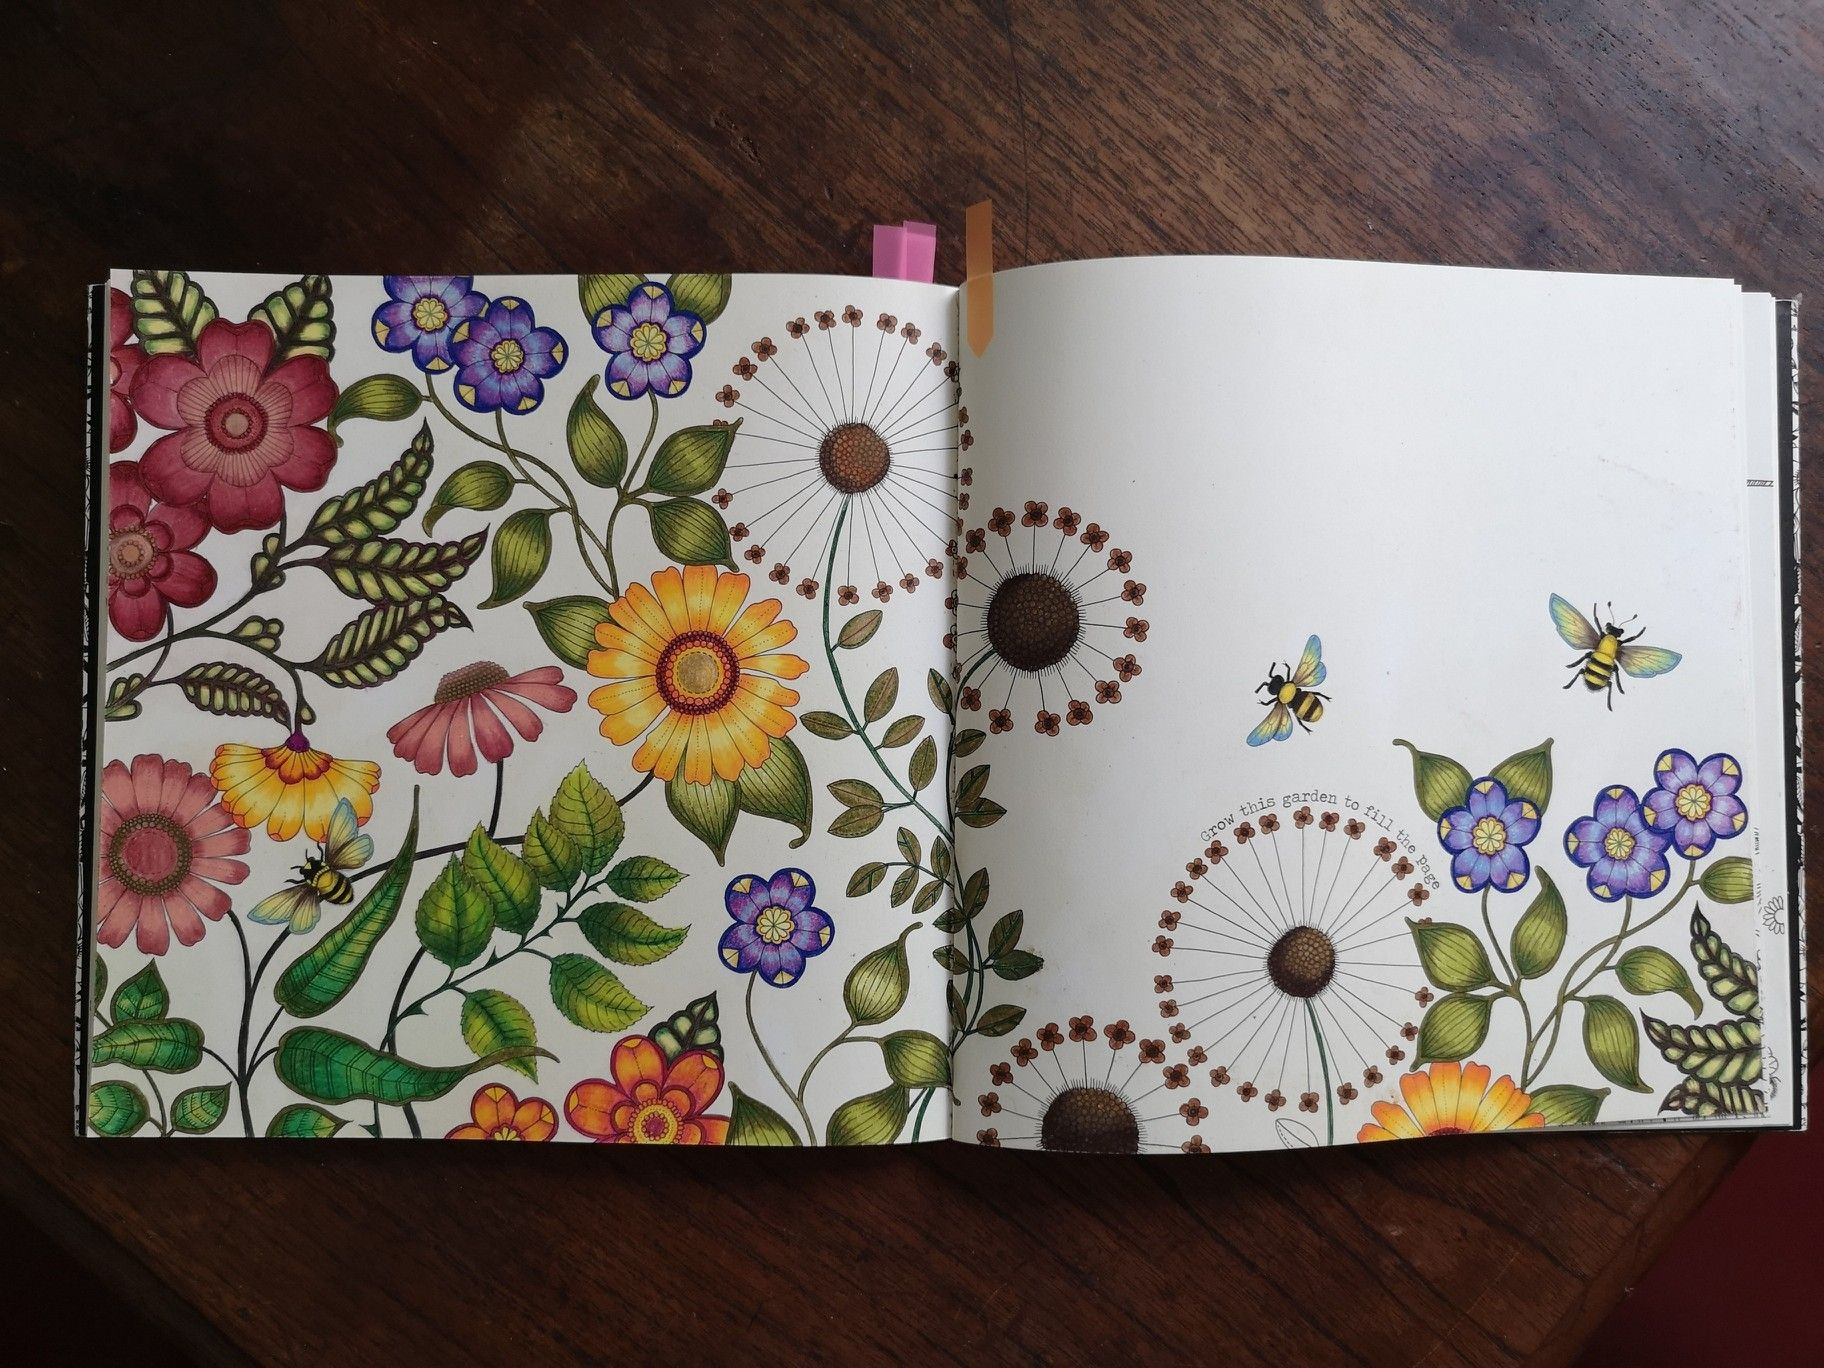 I Thought Of Sharing My Finished Page From December 2017 From Secret Garden Coloring Book By J Secret Garden Coloring Book Coloring Books Gardens Coloring Book